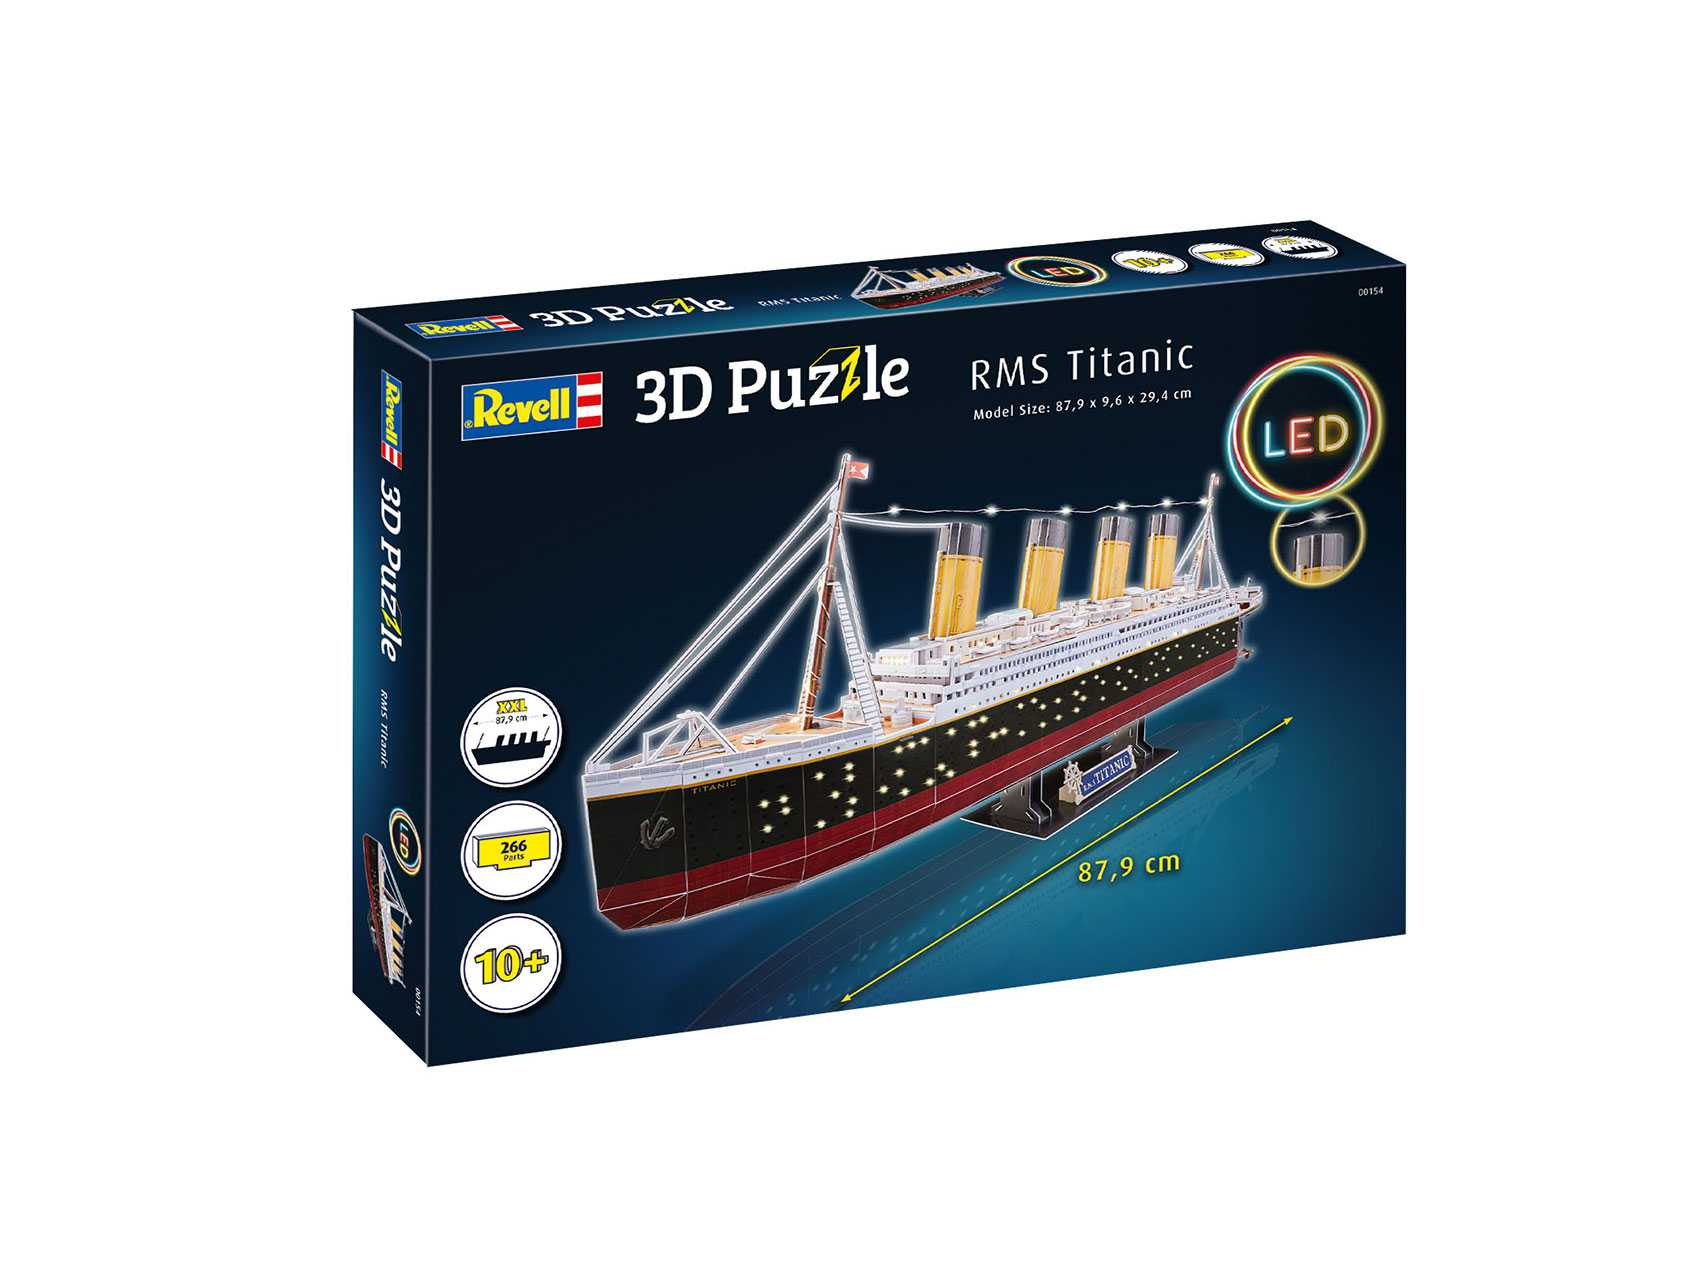 3D Puzzle Revell – RMS Titanic (LED Edition)